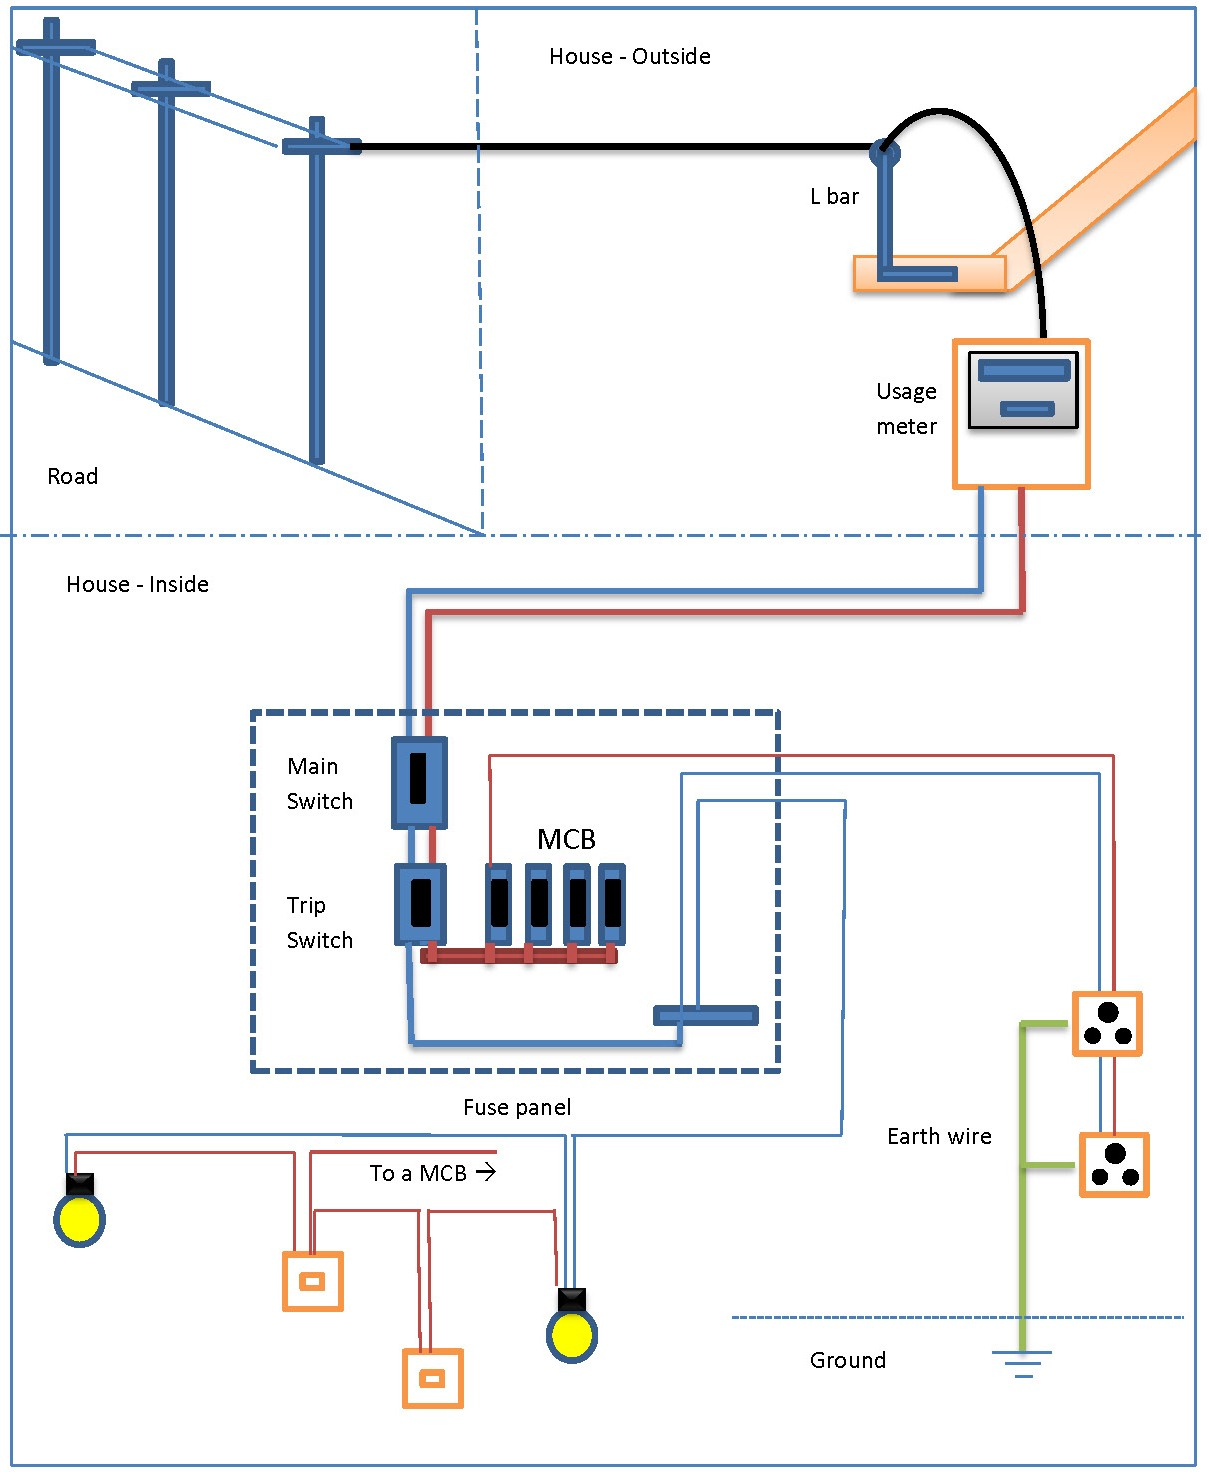 Doc3 senasum's blog house wiring diagram sri lanka house wiring connection diagram at gsmx.co